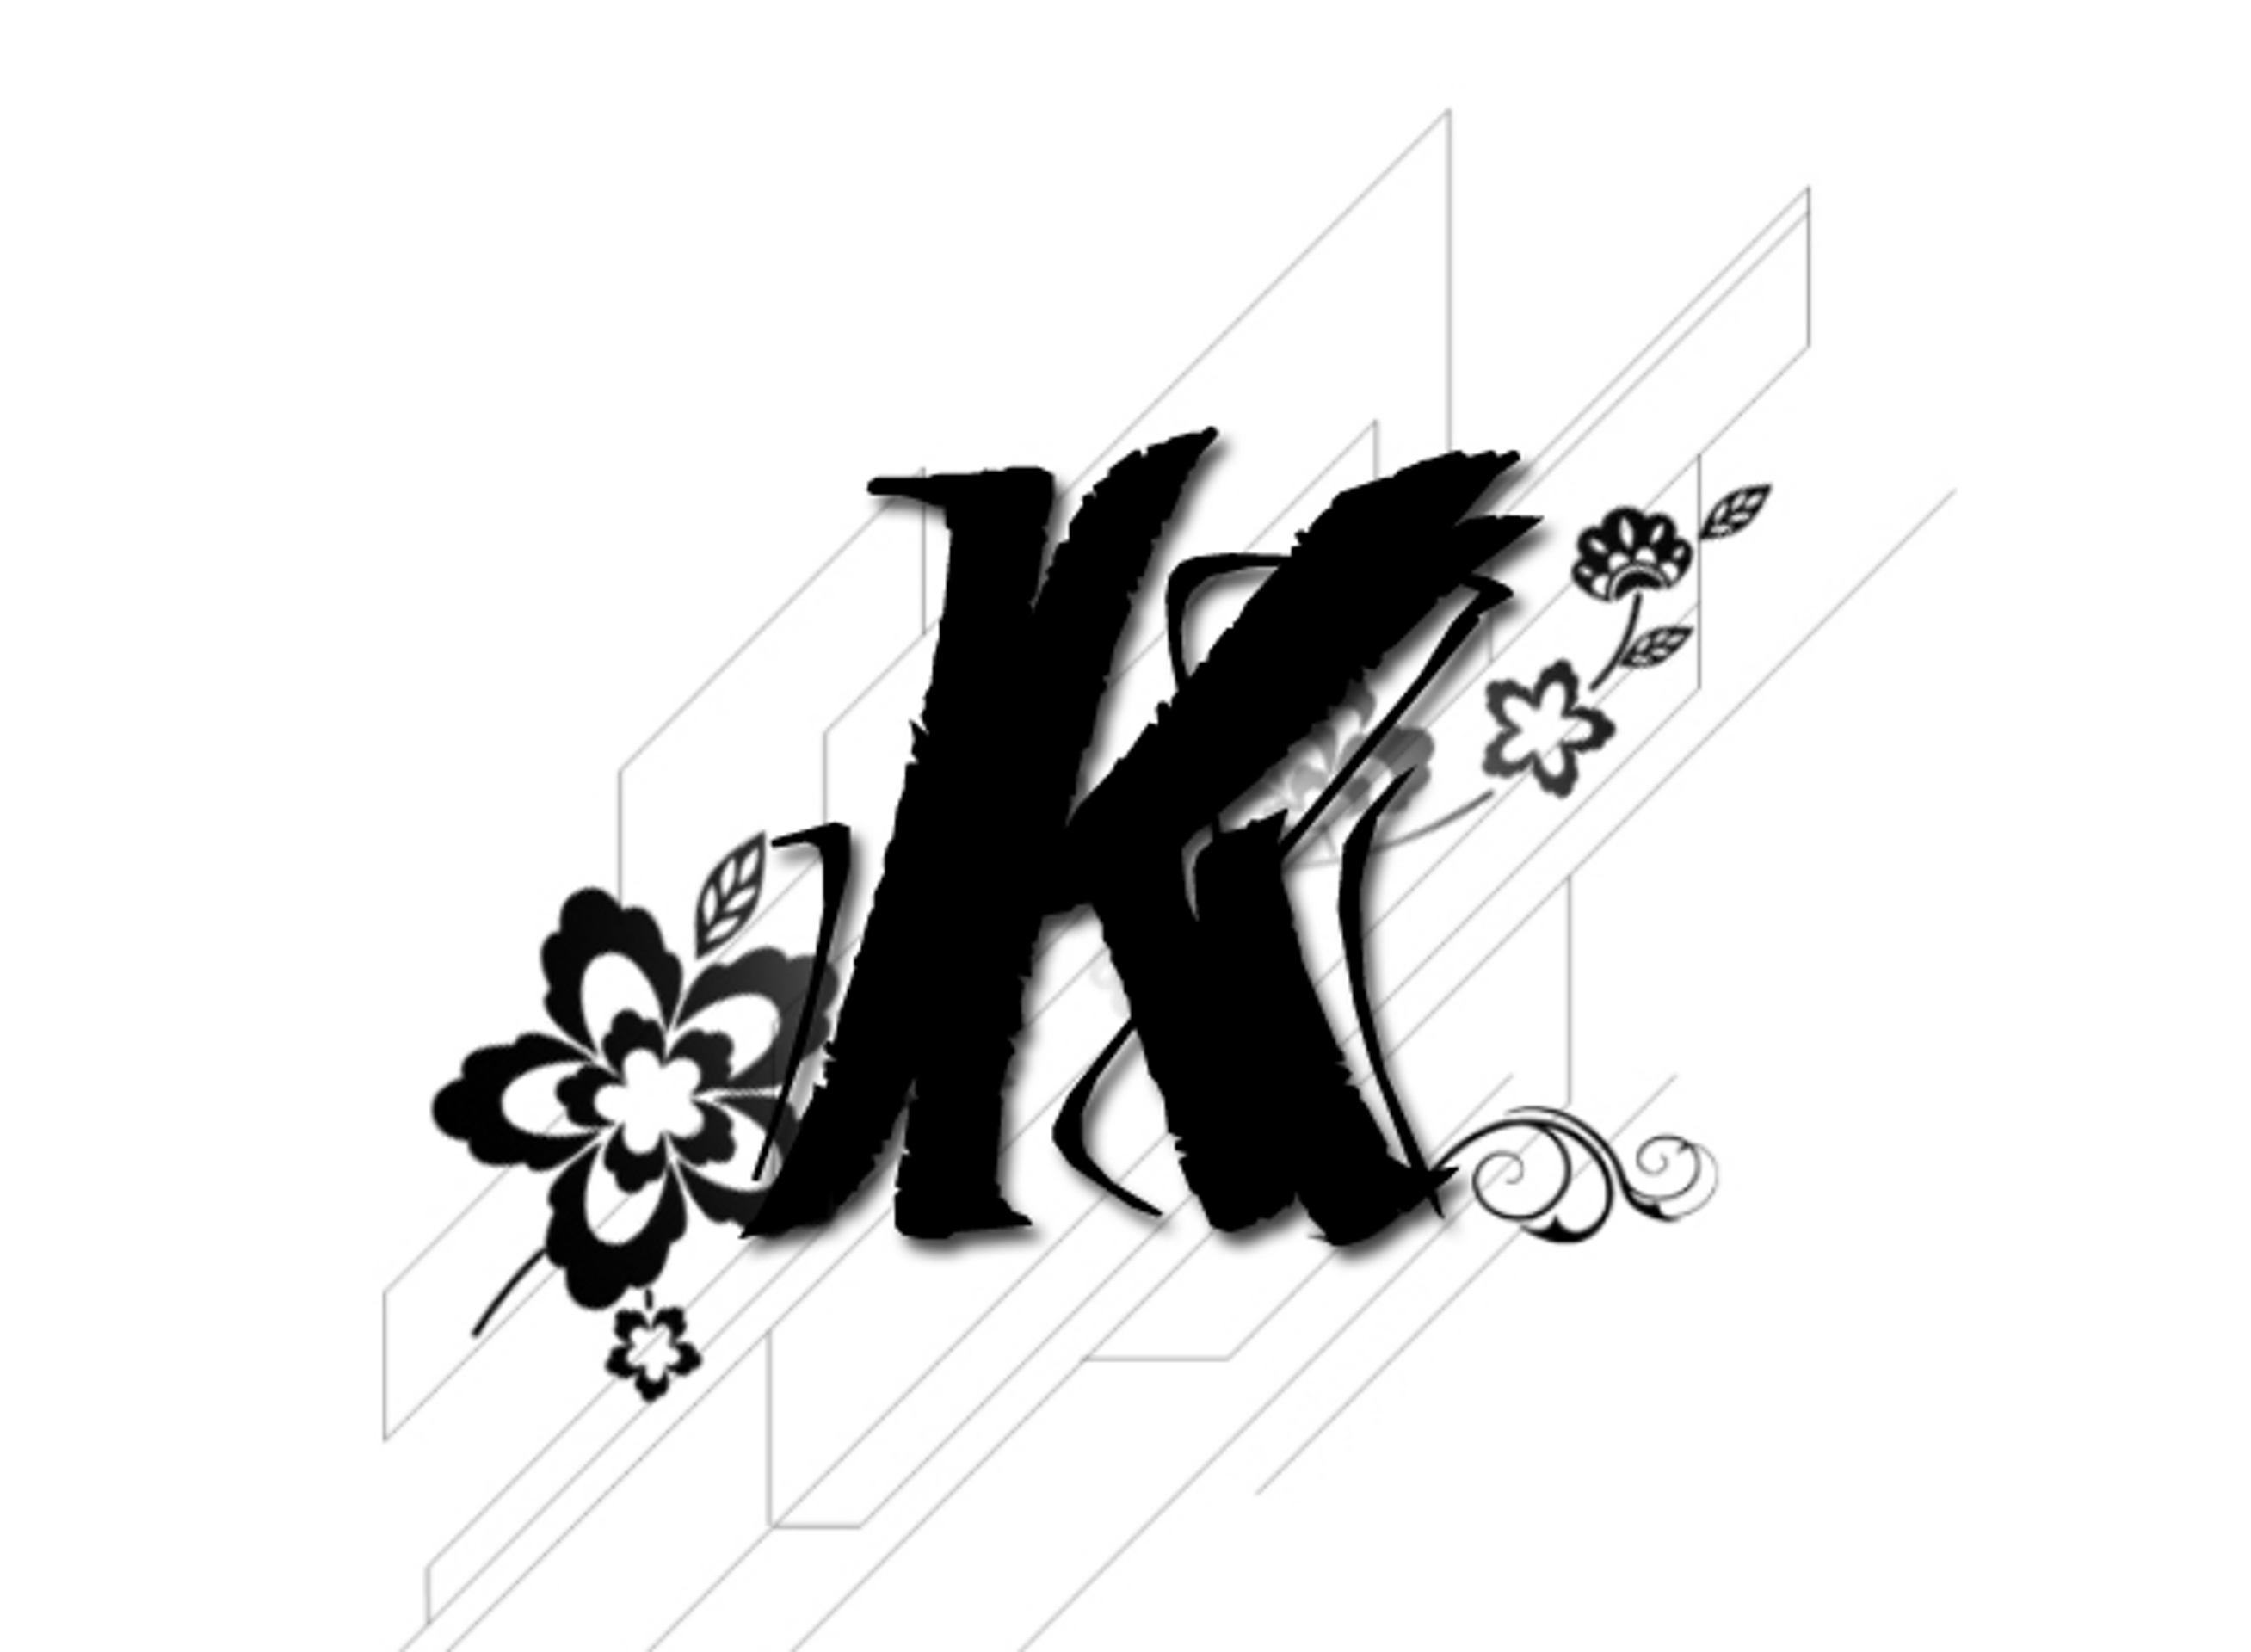 HD Wallpaper and background photos of The letter K for fans of The Alphabet images 22187420